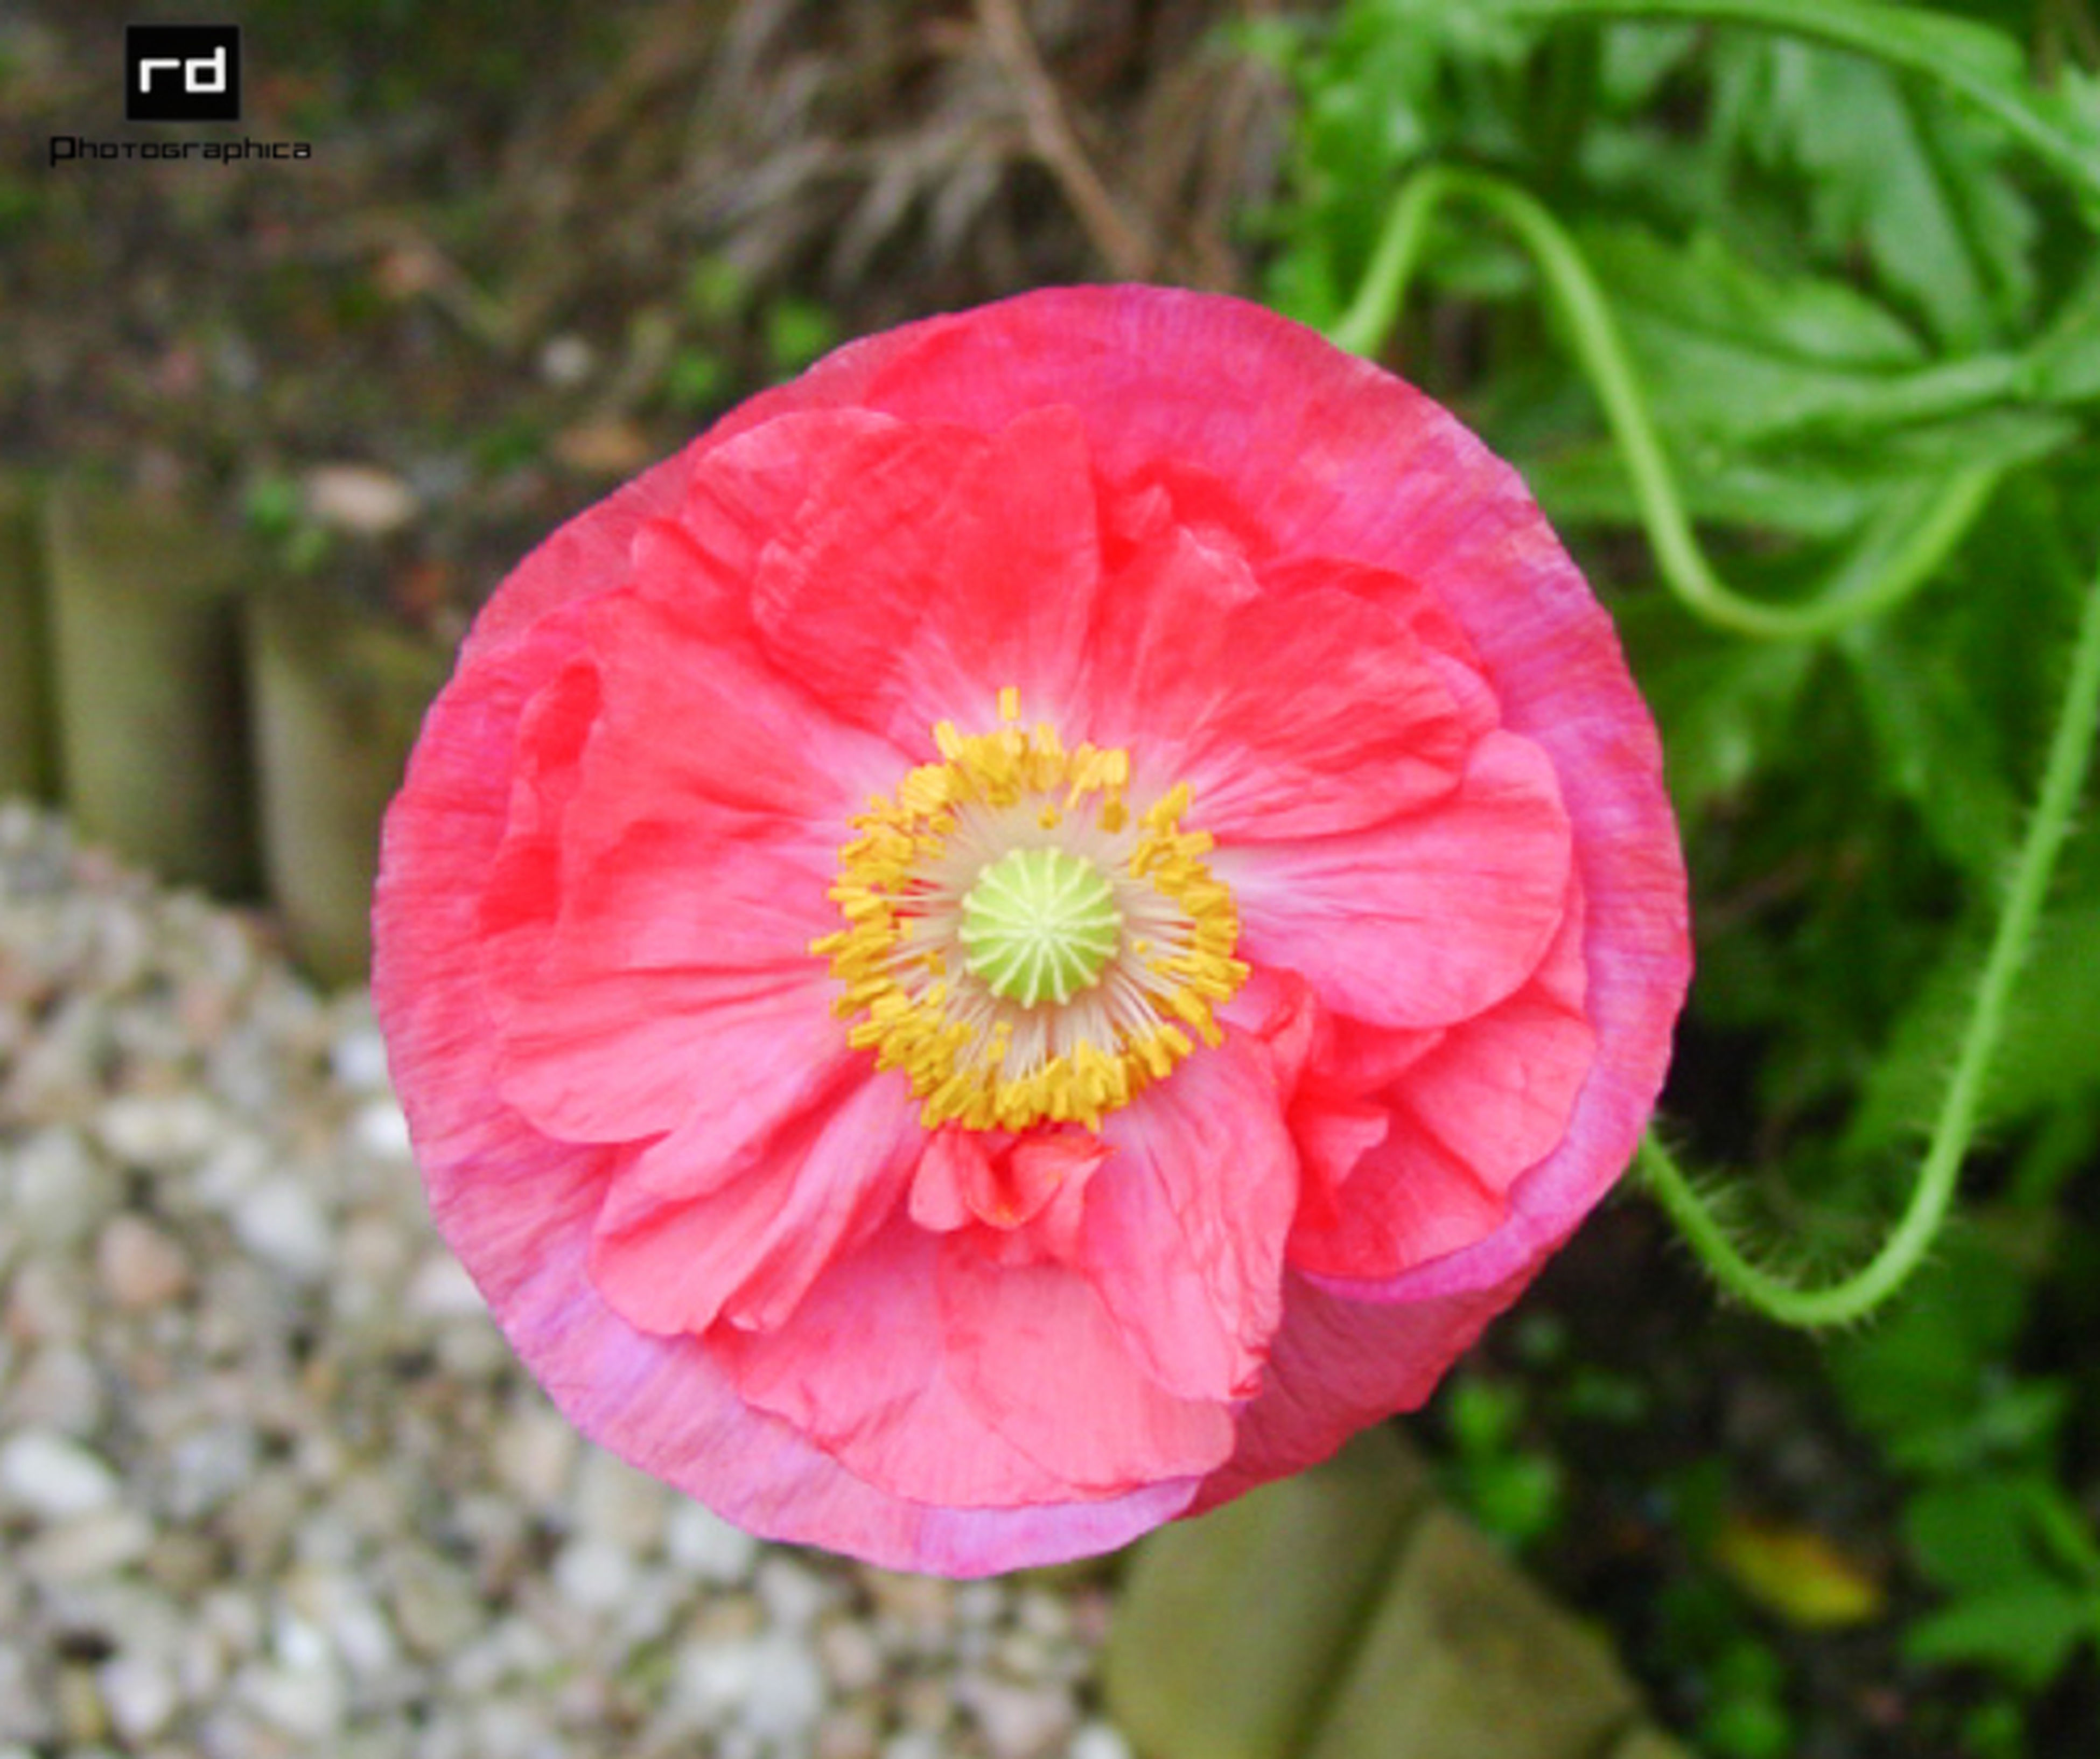 flower, freshness, red, petal, growth, close-up, fragility, focus on foreground, flower head, pink color, beauty in nature, nature, blooming, plant, single flower, field, day, outdoors, high angle view, selective focus